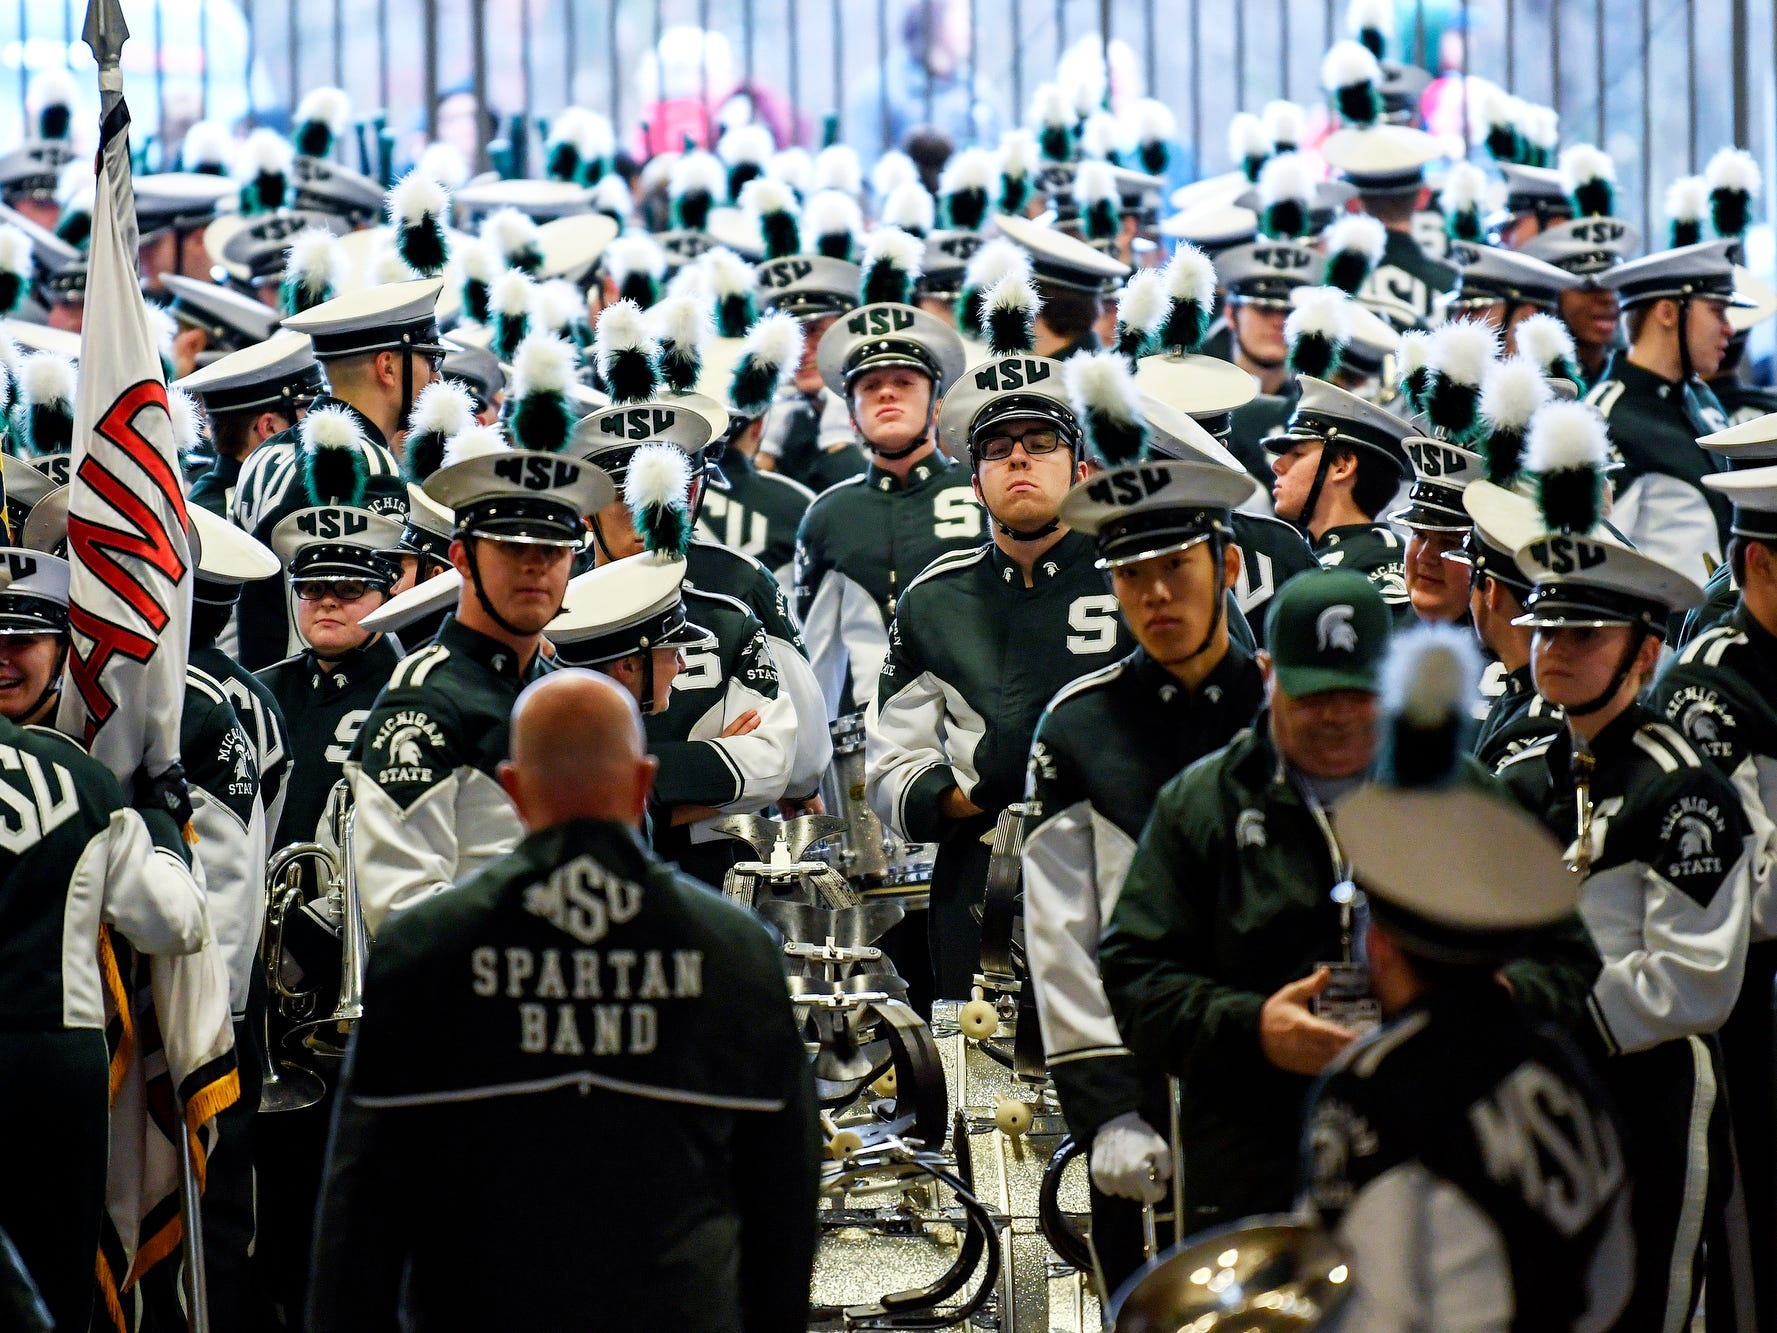 Michigan State Spartan Band prepares in the north side tunnel before the game against Rutgers on Saturday, Nov. 24, 2018, at Spartan Stadium in East Lansing.